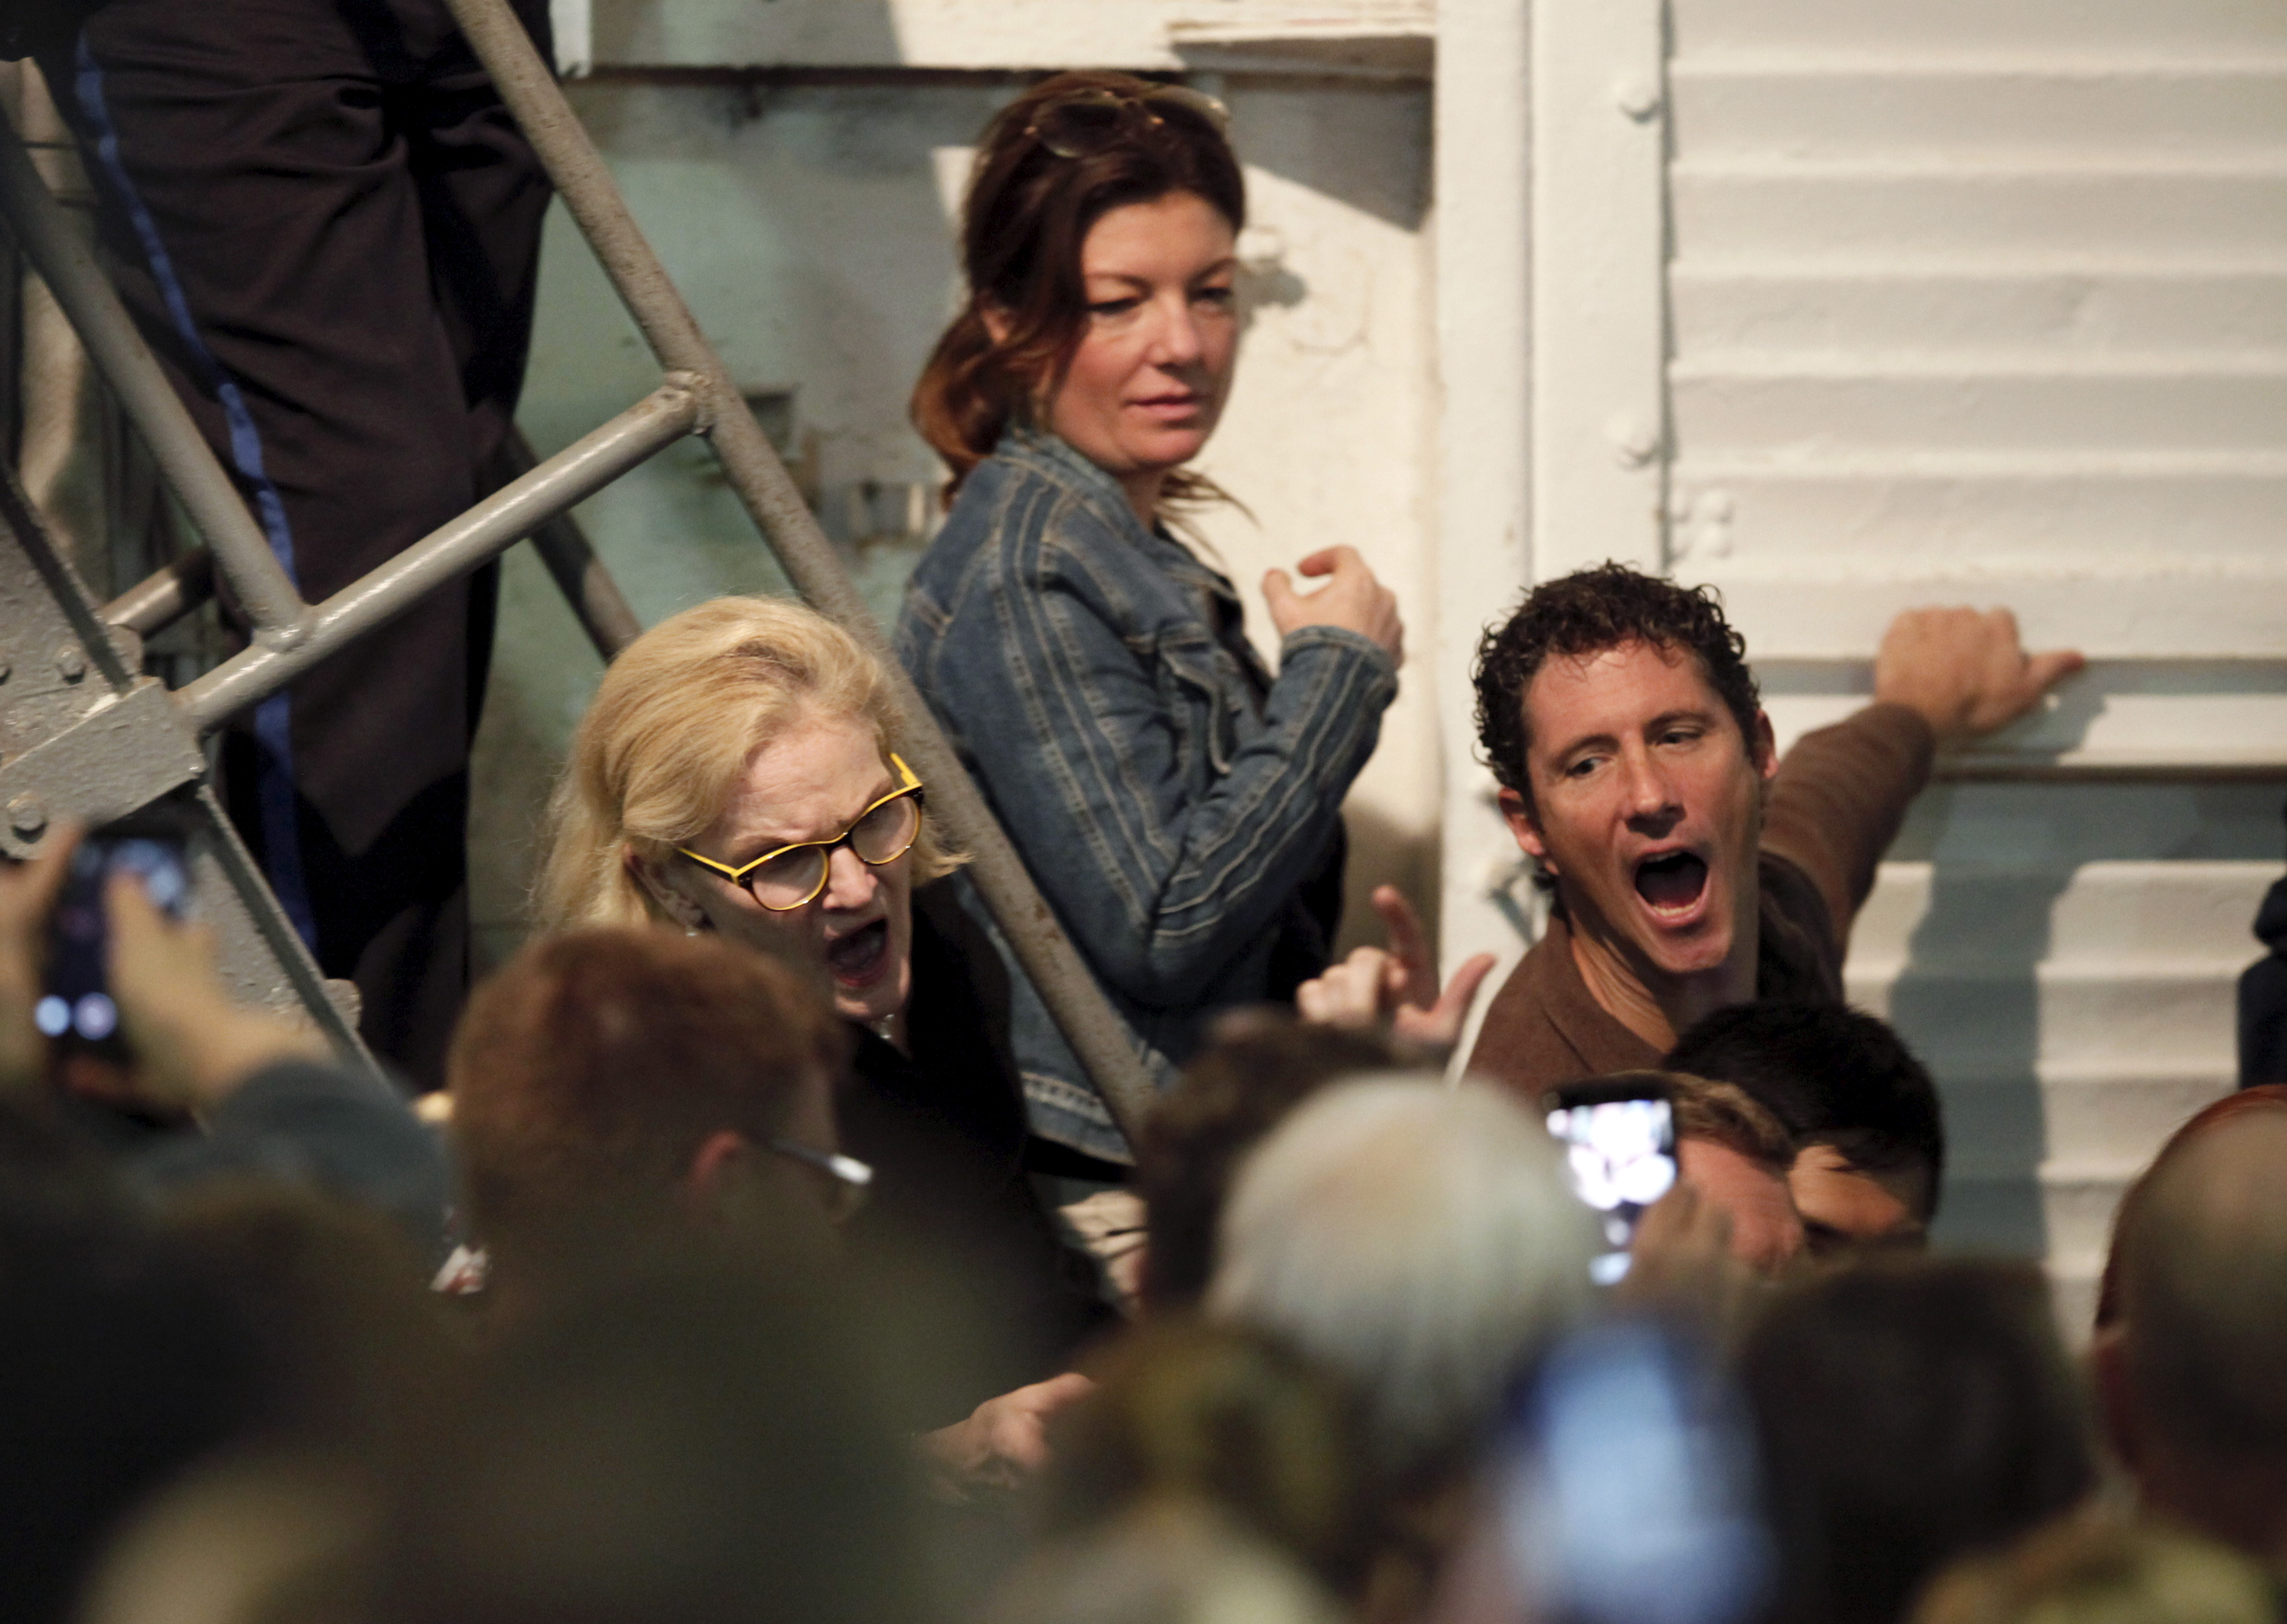 Trump supporters yell at passing protesters (unseen), who are against Trump's policies, during a rally by U.S. Republican presidential candidate Donald Trump aboard the USS Yorktown Memorial in Mount Pleasant, S.C., Dec. 7, 2015.